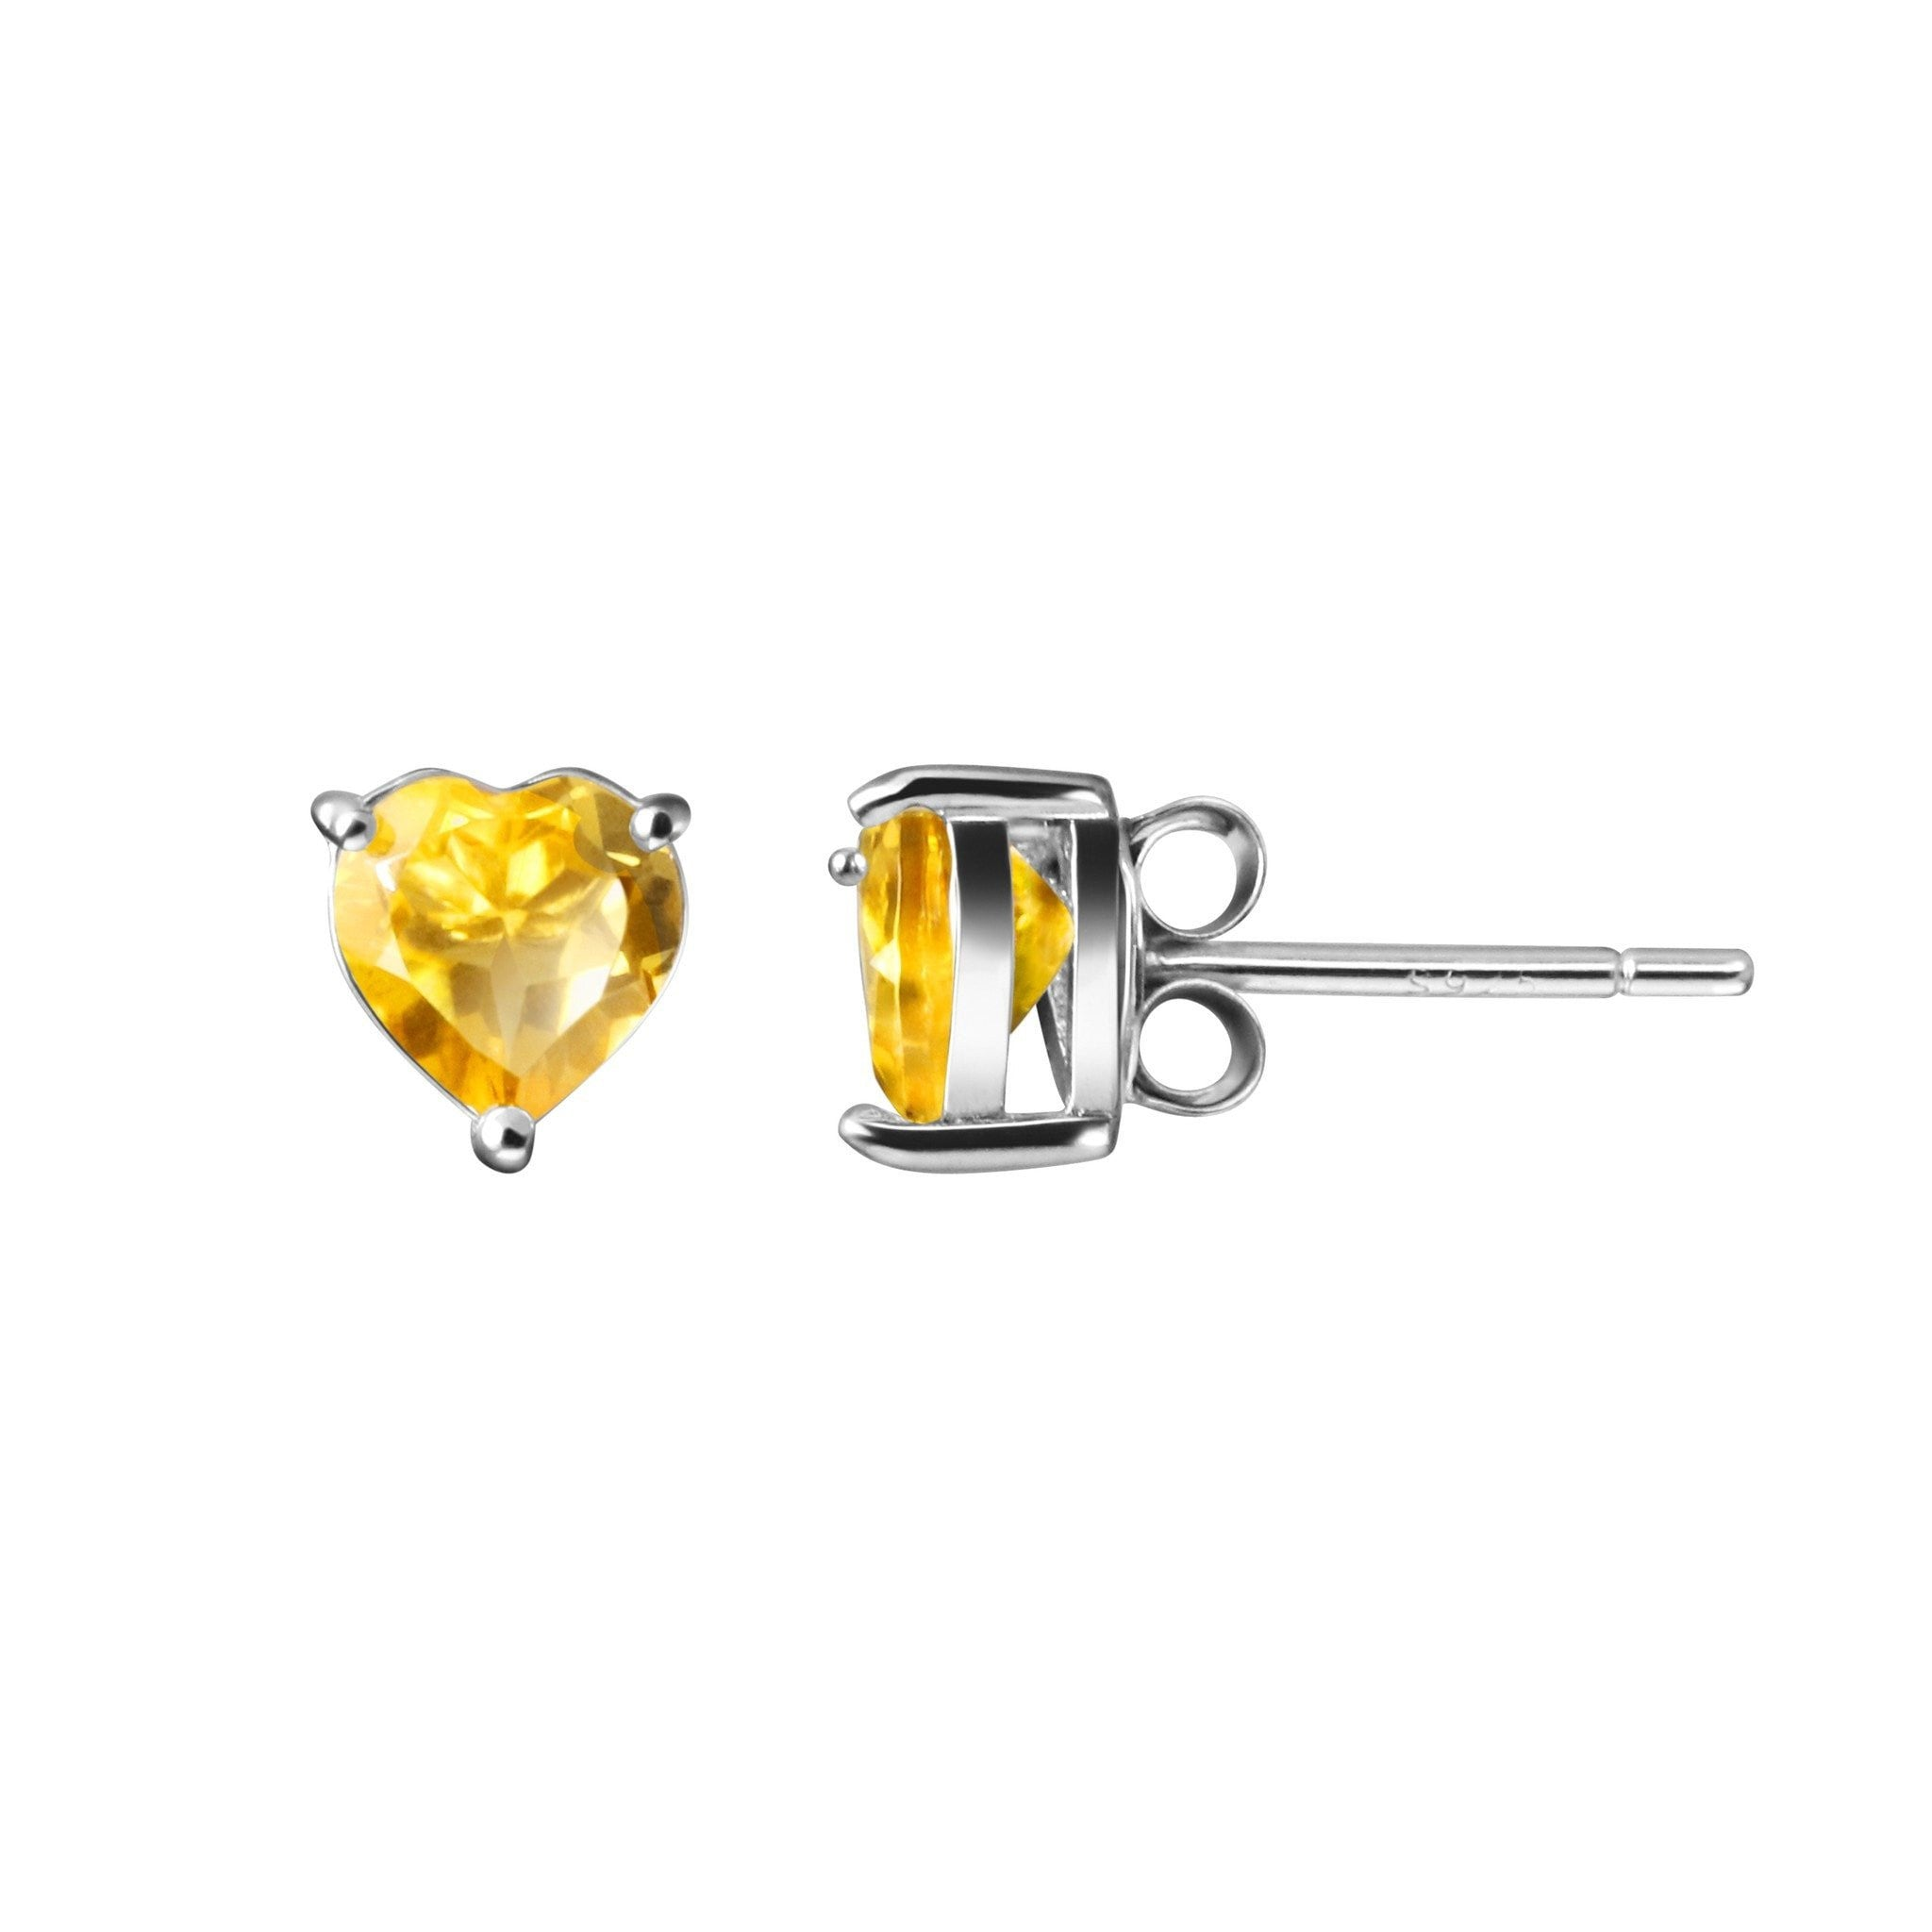 earrings citrine morelli lemon gold stud gdg garden p paul betteridge gate